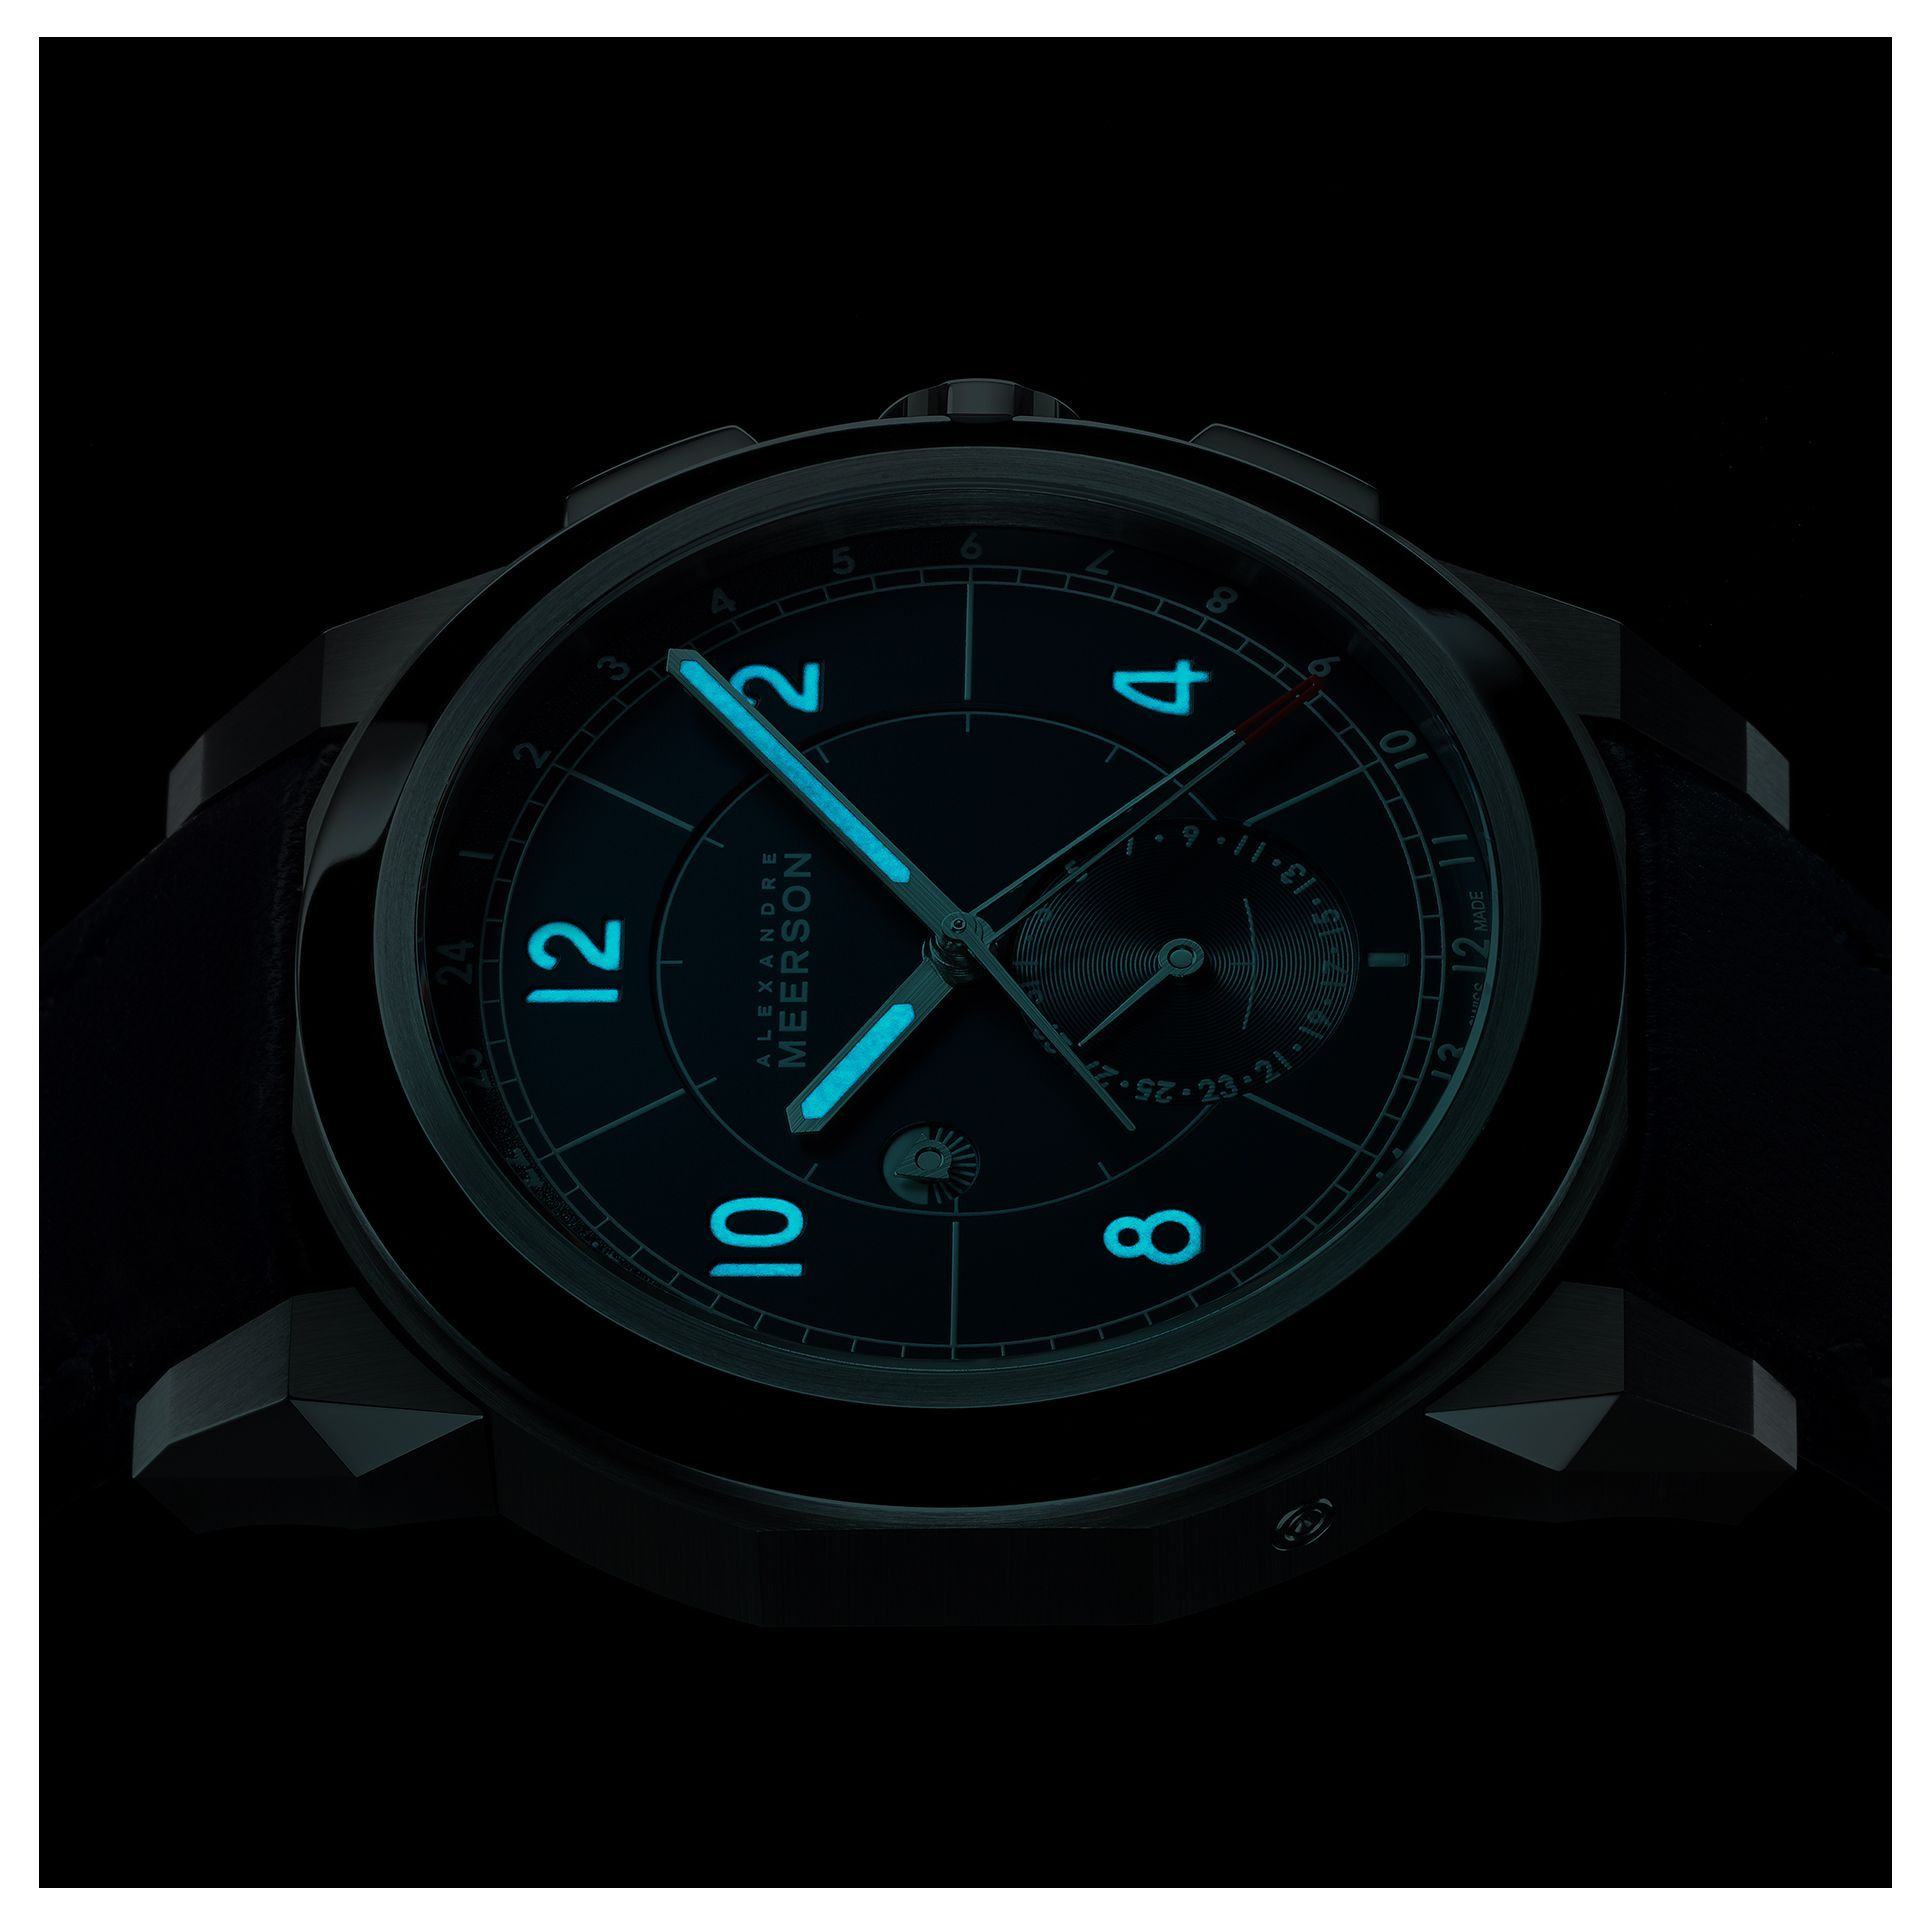 Night vision. The D15's subtle superluminova beams from